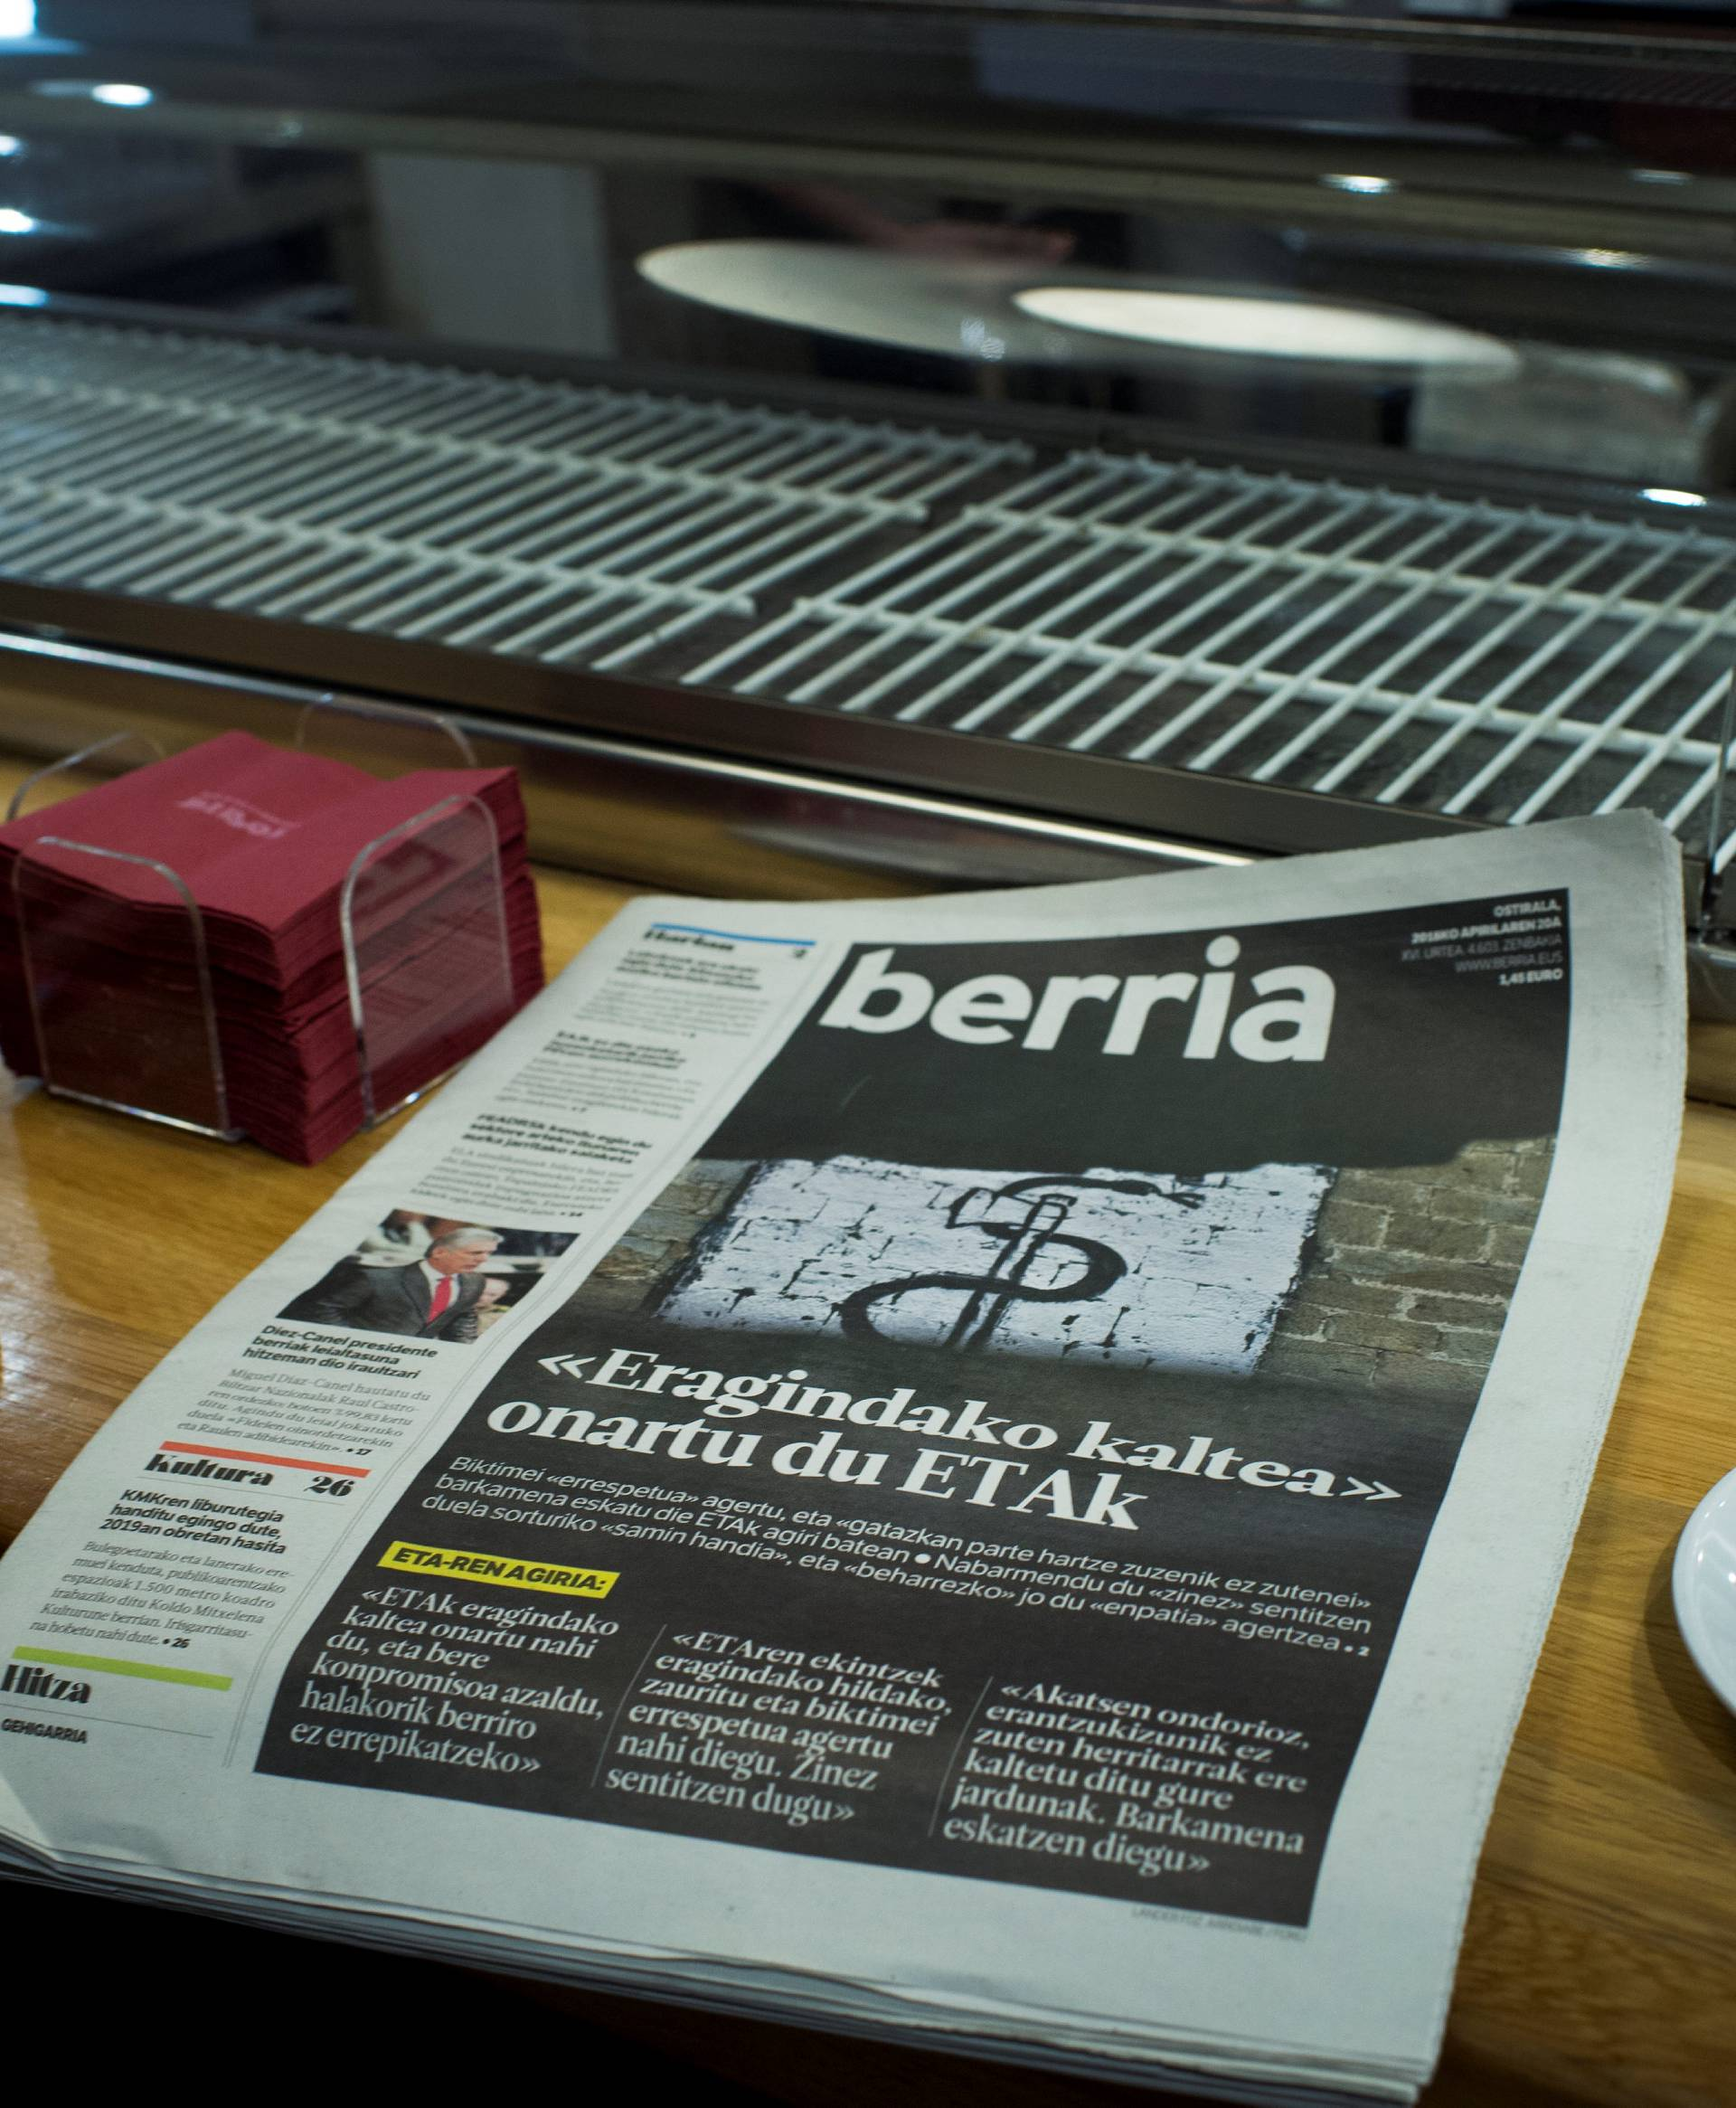 Basque language newspaper Berria displays a photograph with the symbol of armed Basque separatists ETA following groups apology, in Bilbao